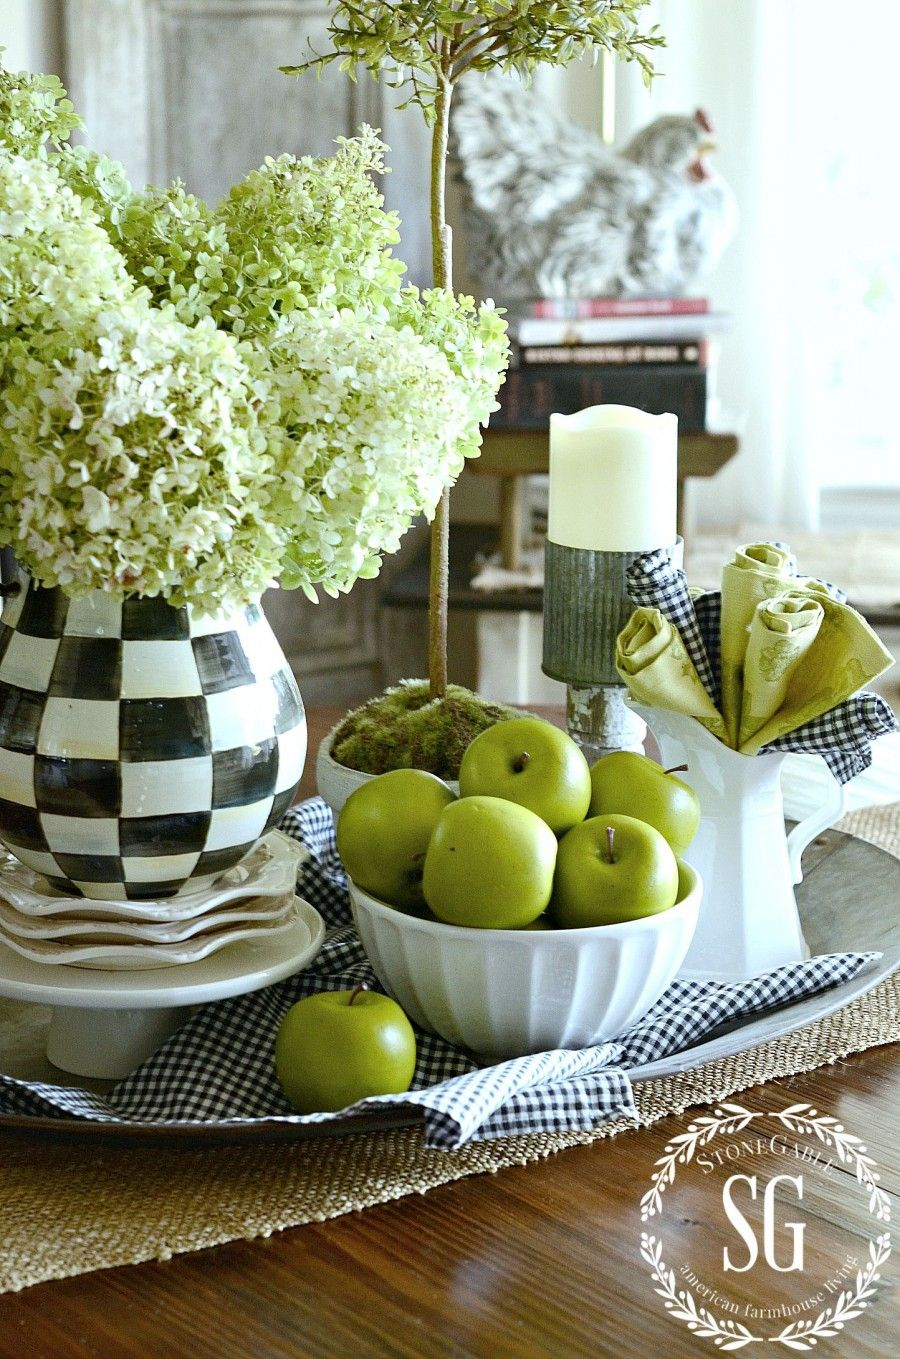 EARLY FALL AND GREEN APPLES A KITCHEN VIGNETTE - StoneGable